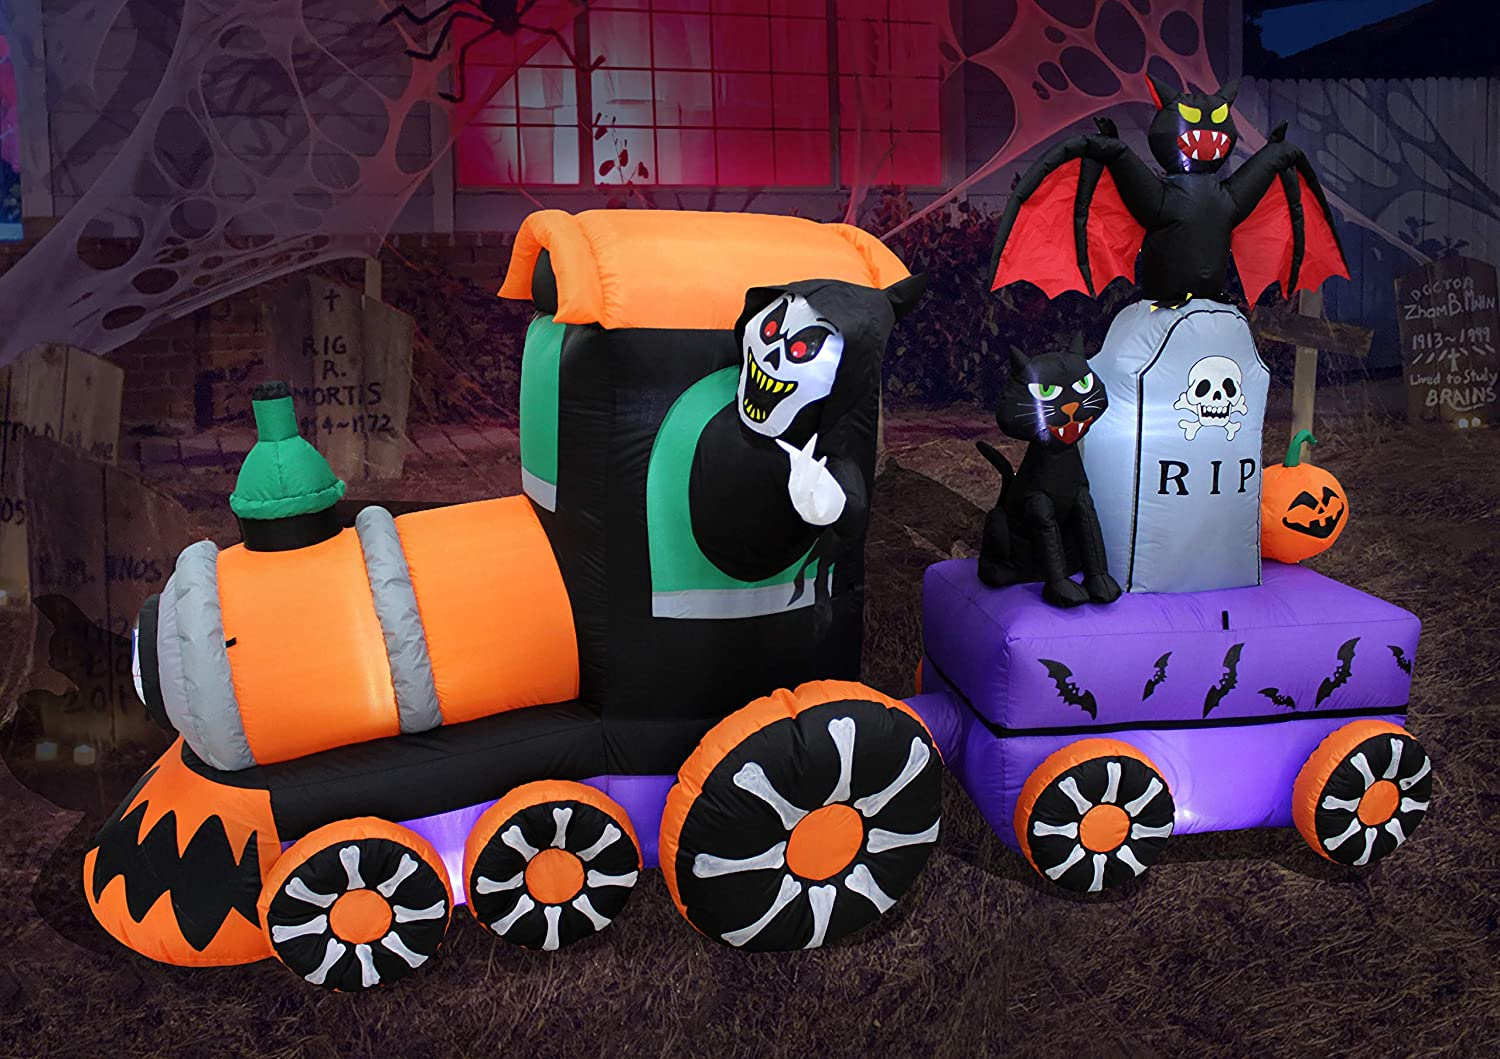 8 Foot Long Lighted Safety and Max 66% OFF trust Halloween Reaper Inflatable Train Ride Grim